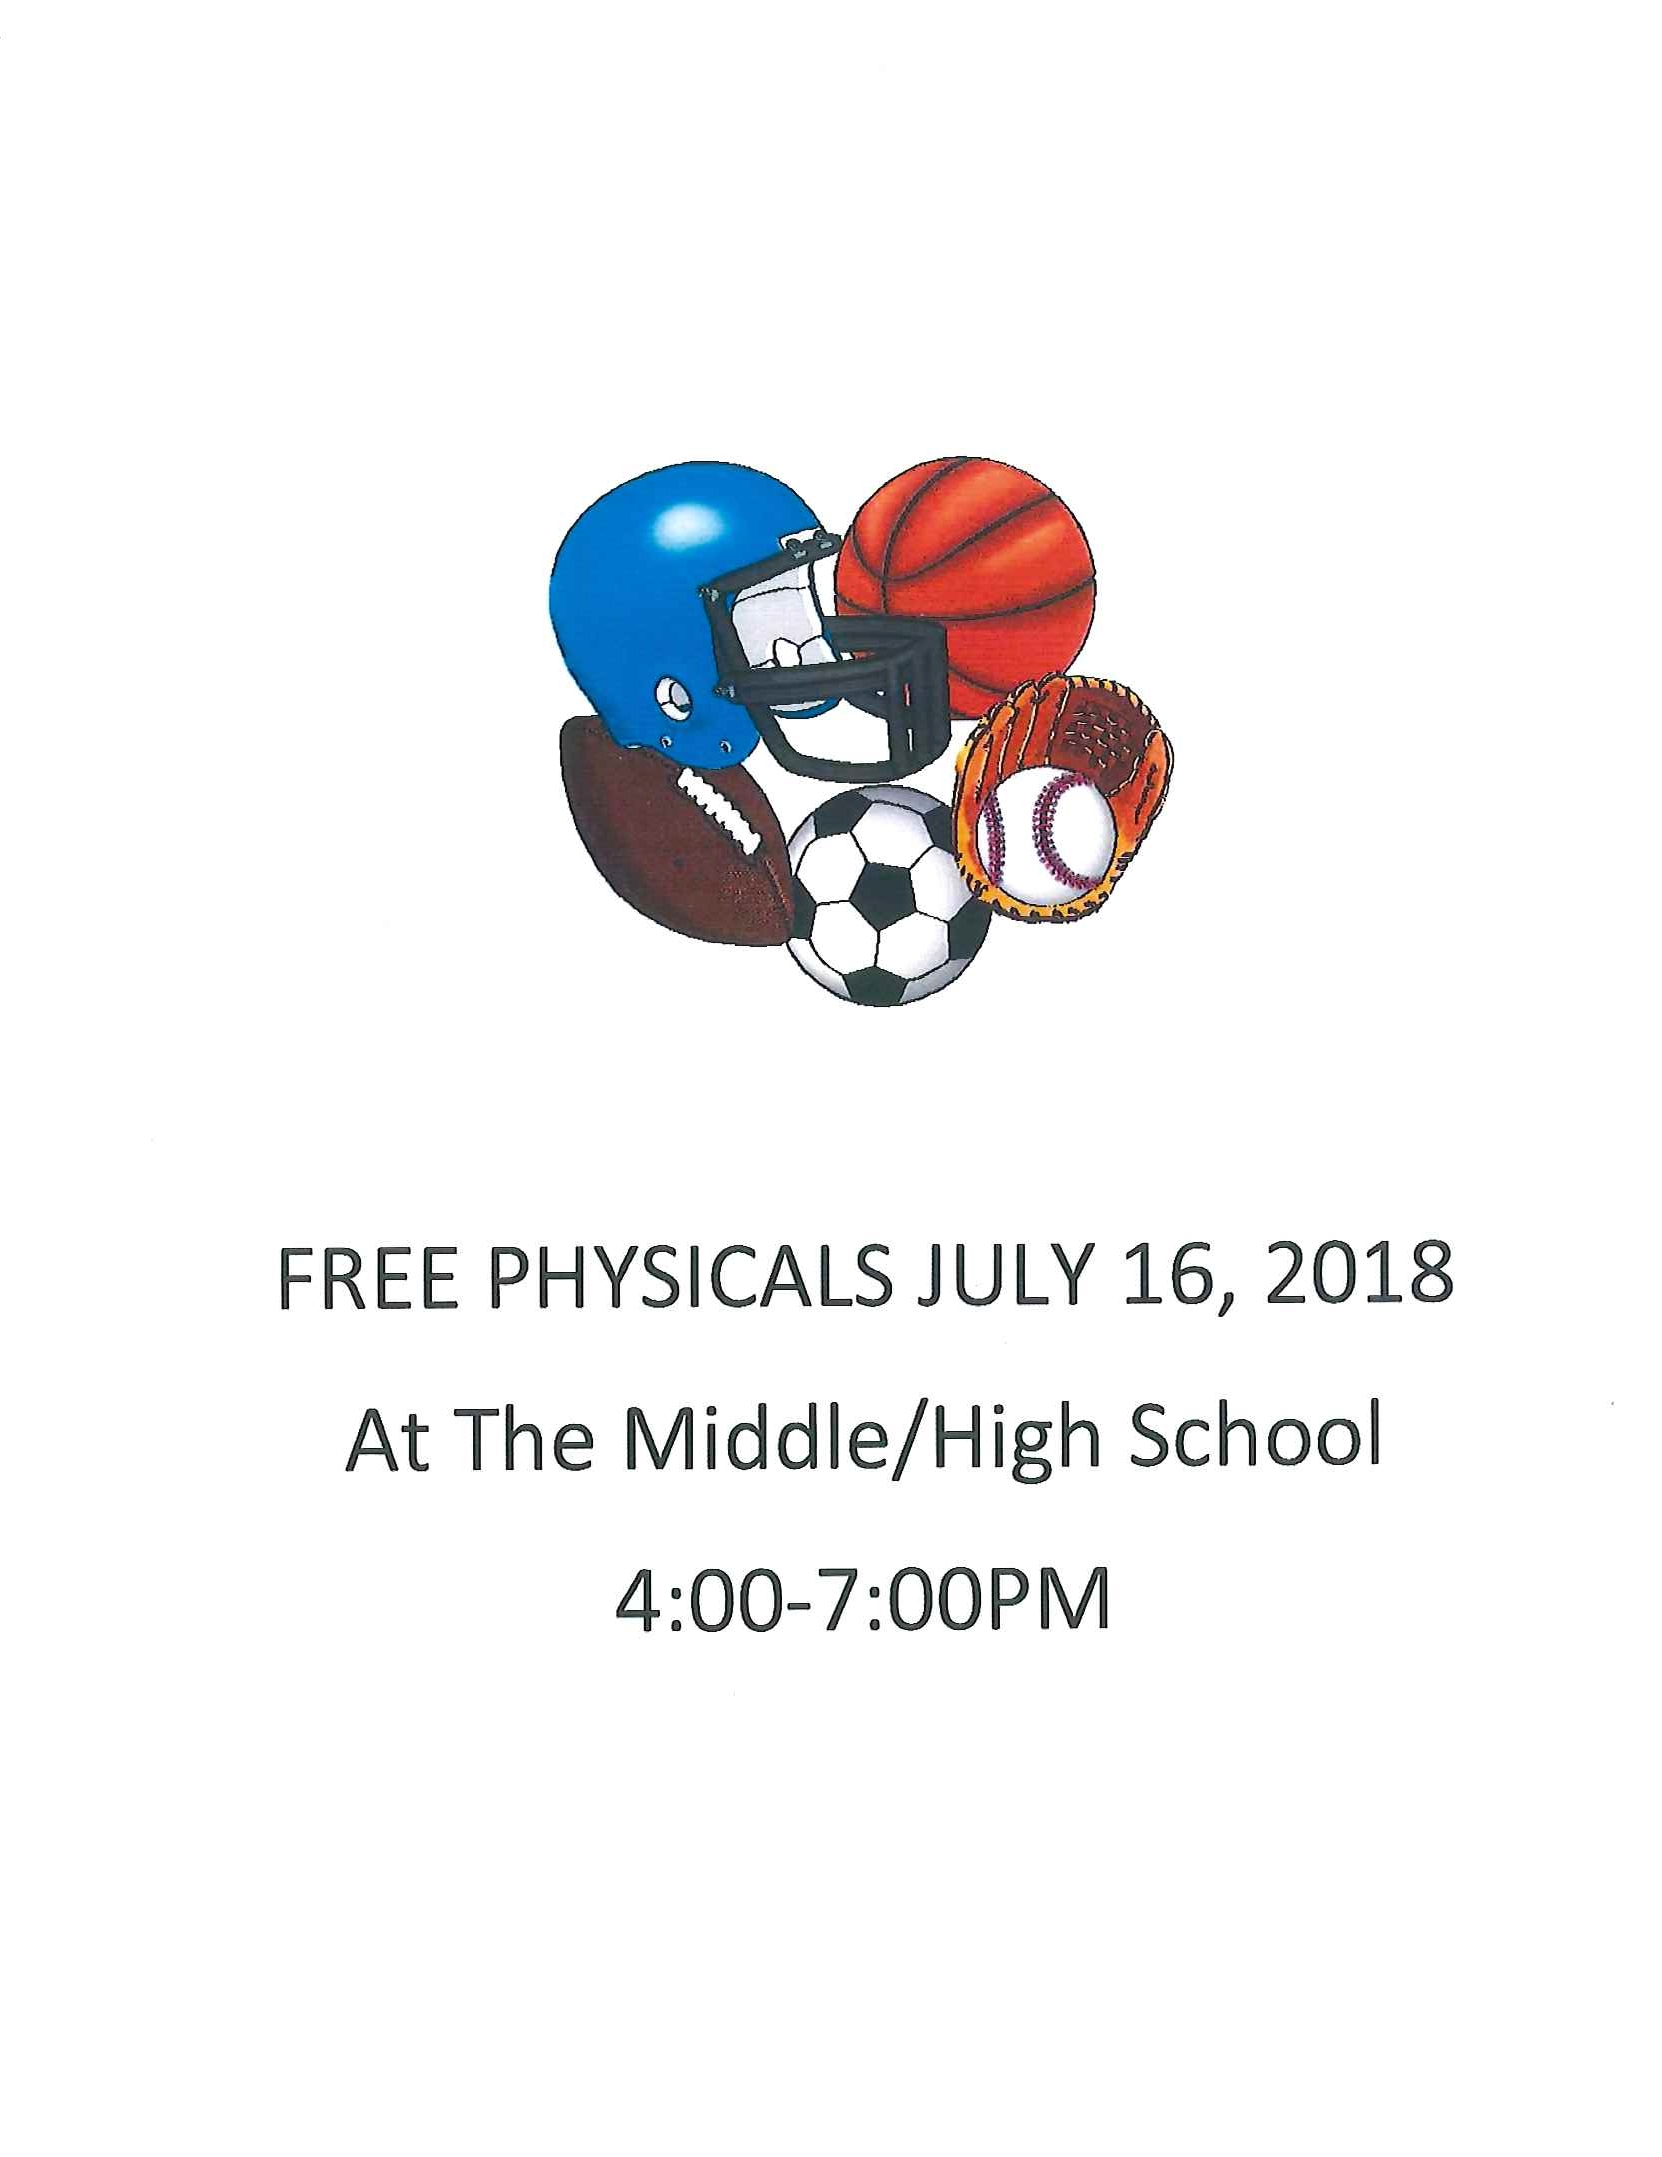 Free Physical Night!!